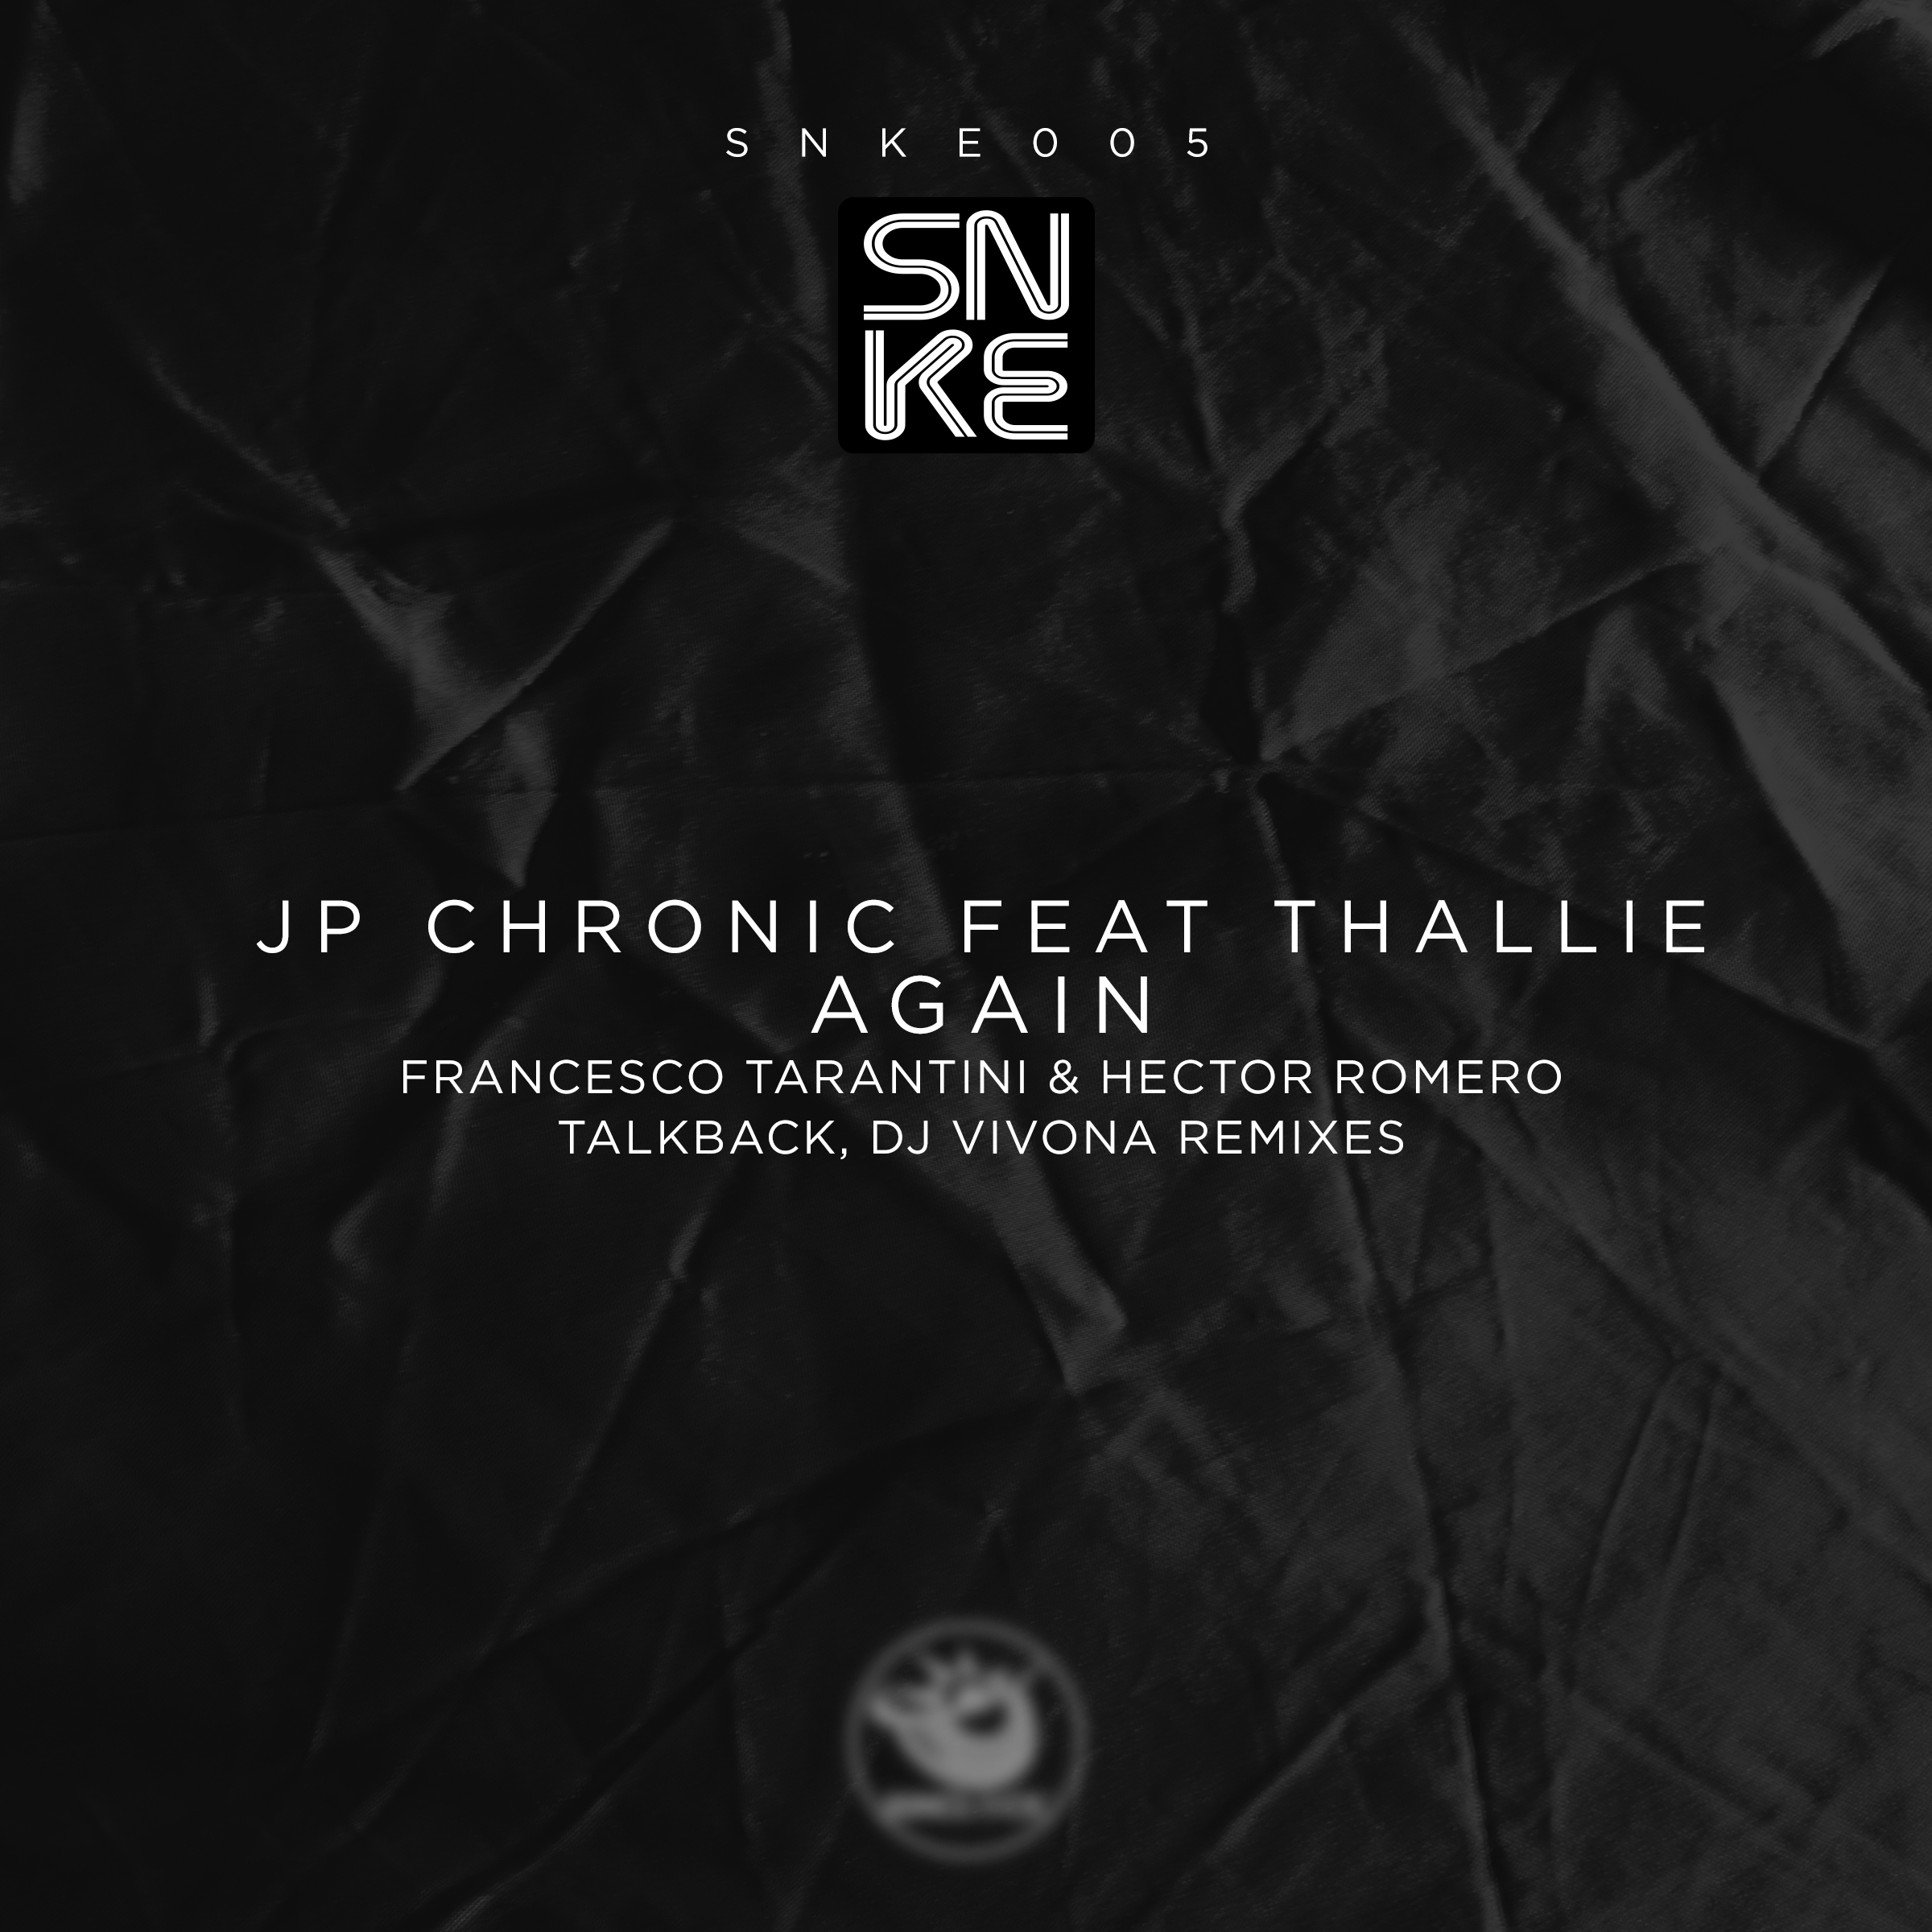 JP Chronic feat. Thallie - Again (incl. Tarantini & Romero, Talkback and Dj Vivona Rmxs) - SNKE005 Cover